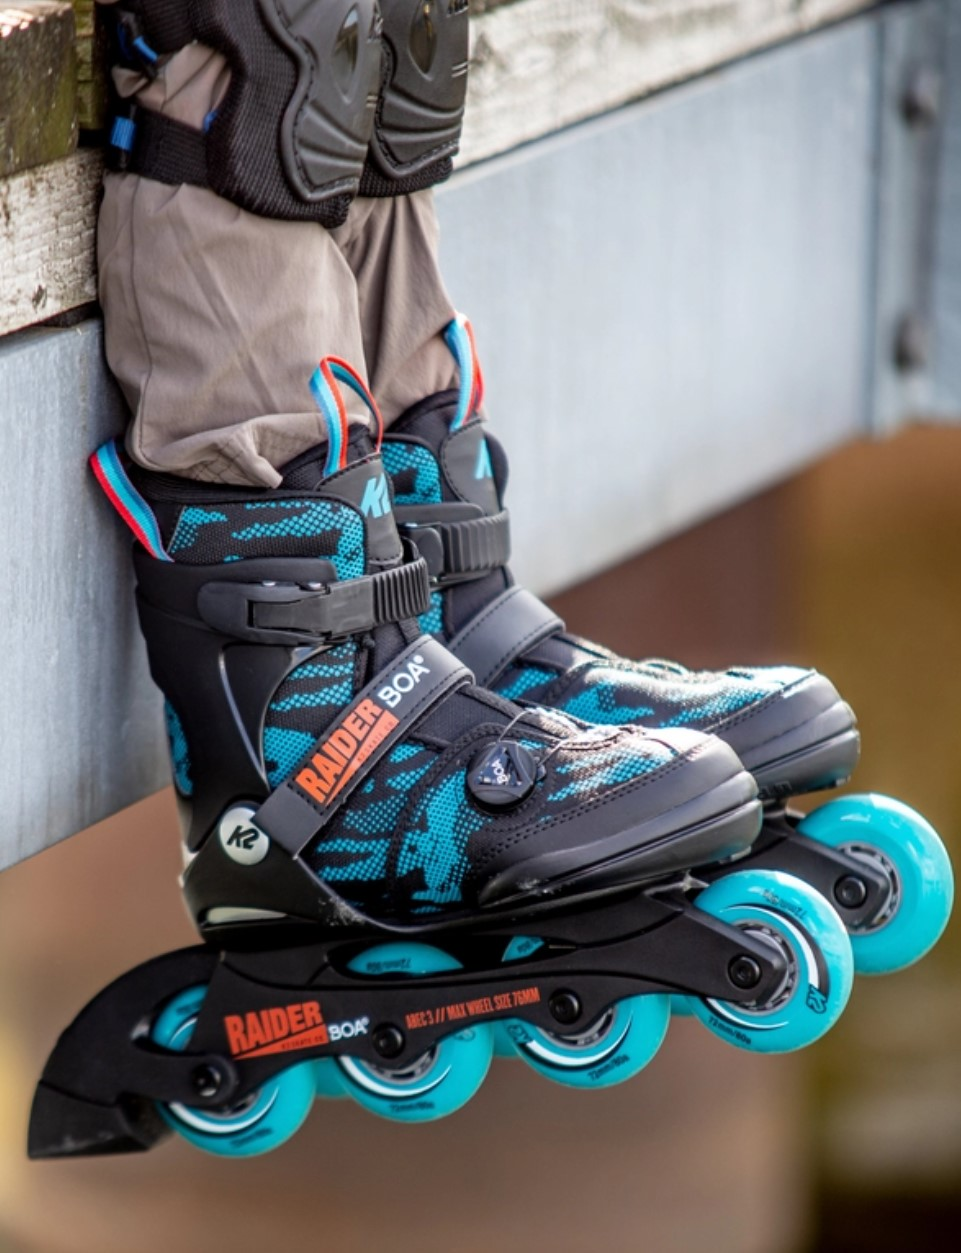 K2 Youth Skate Raider Boa with four wheels and Boa closure system on feet